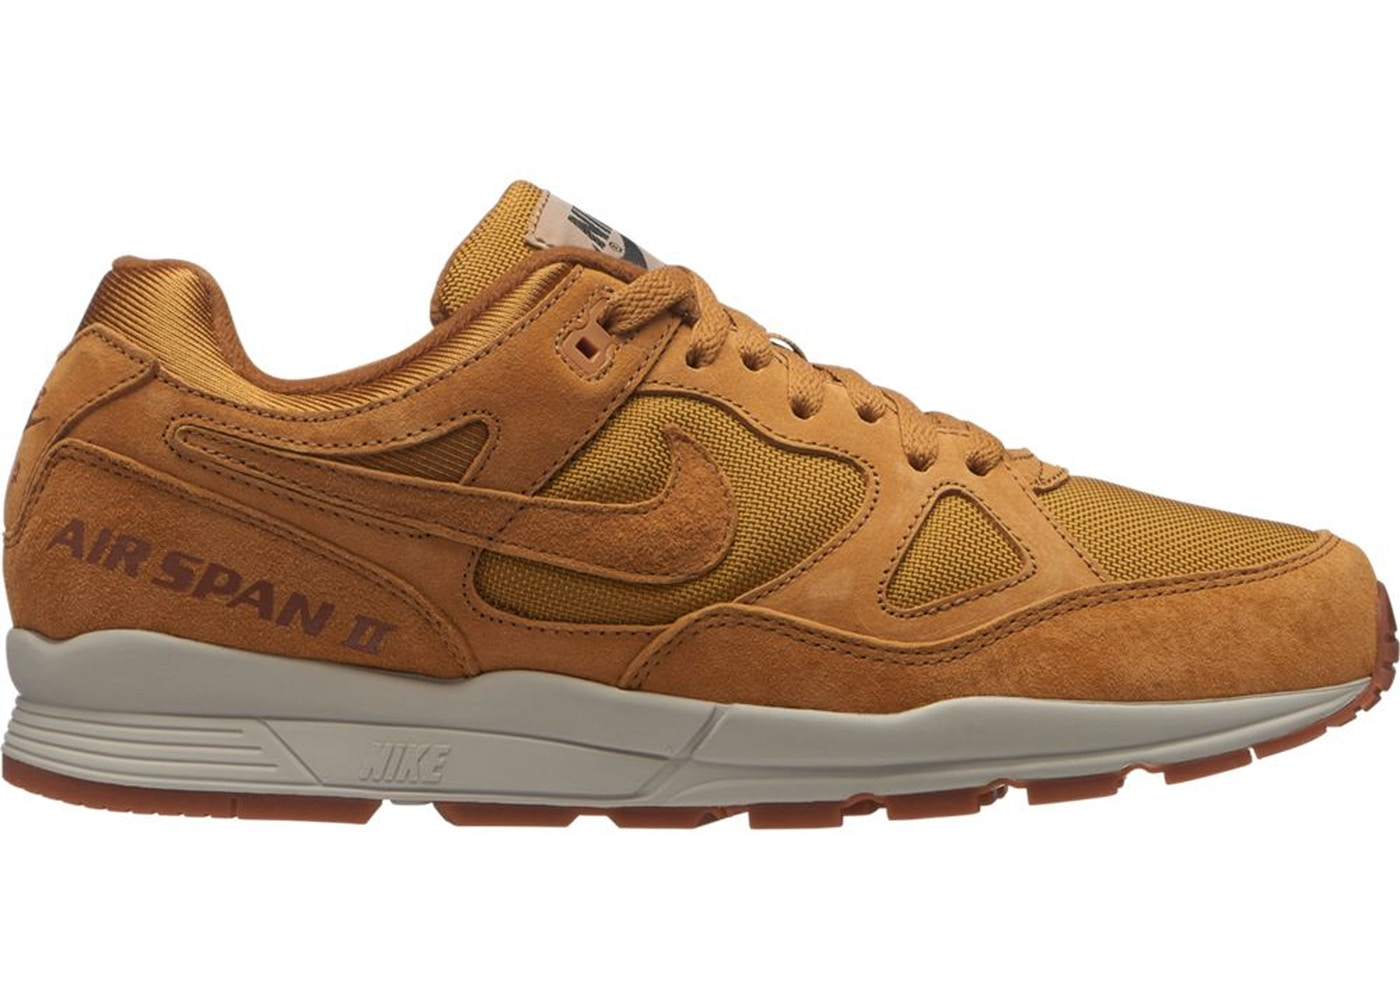 ナイキ NIKE エア スニーカー 【 AIR SPAN 2 WHEAT LIGHT BONEGUM MEDIUM BROWNWHEAT 】 メンズ